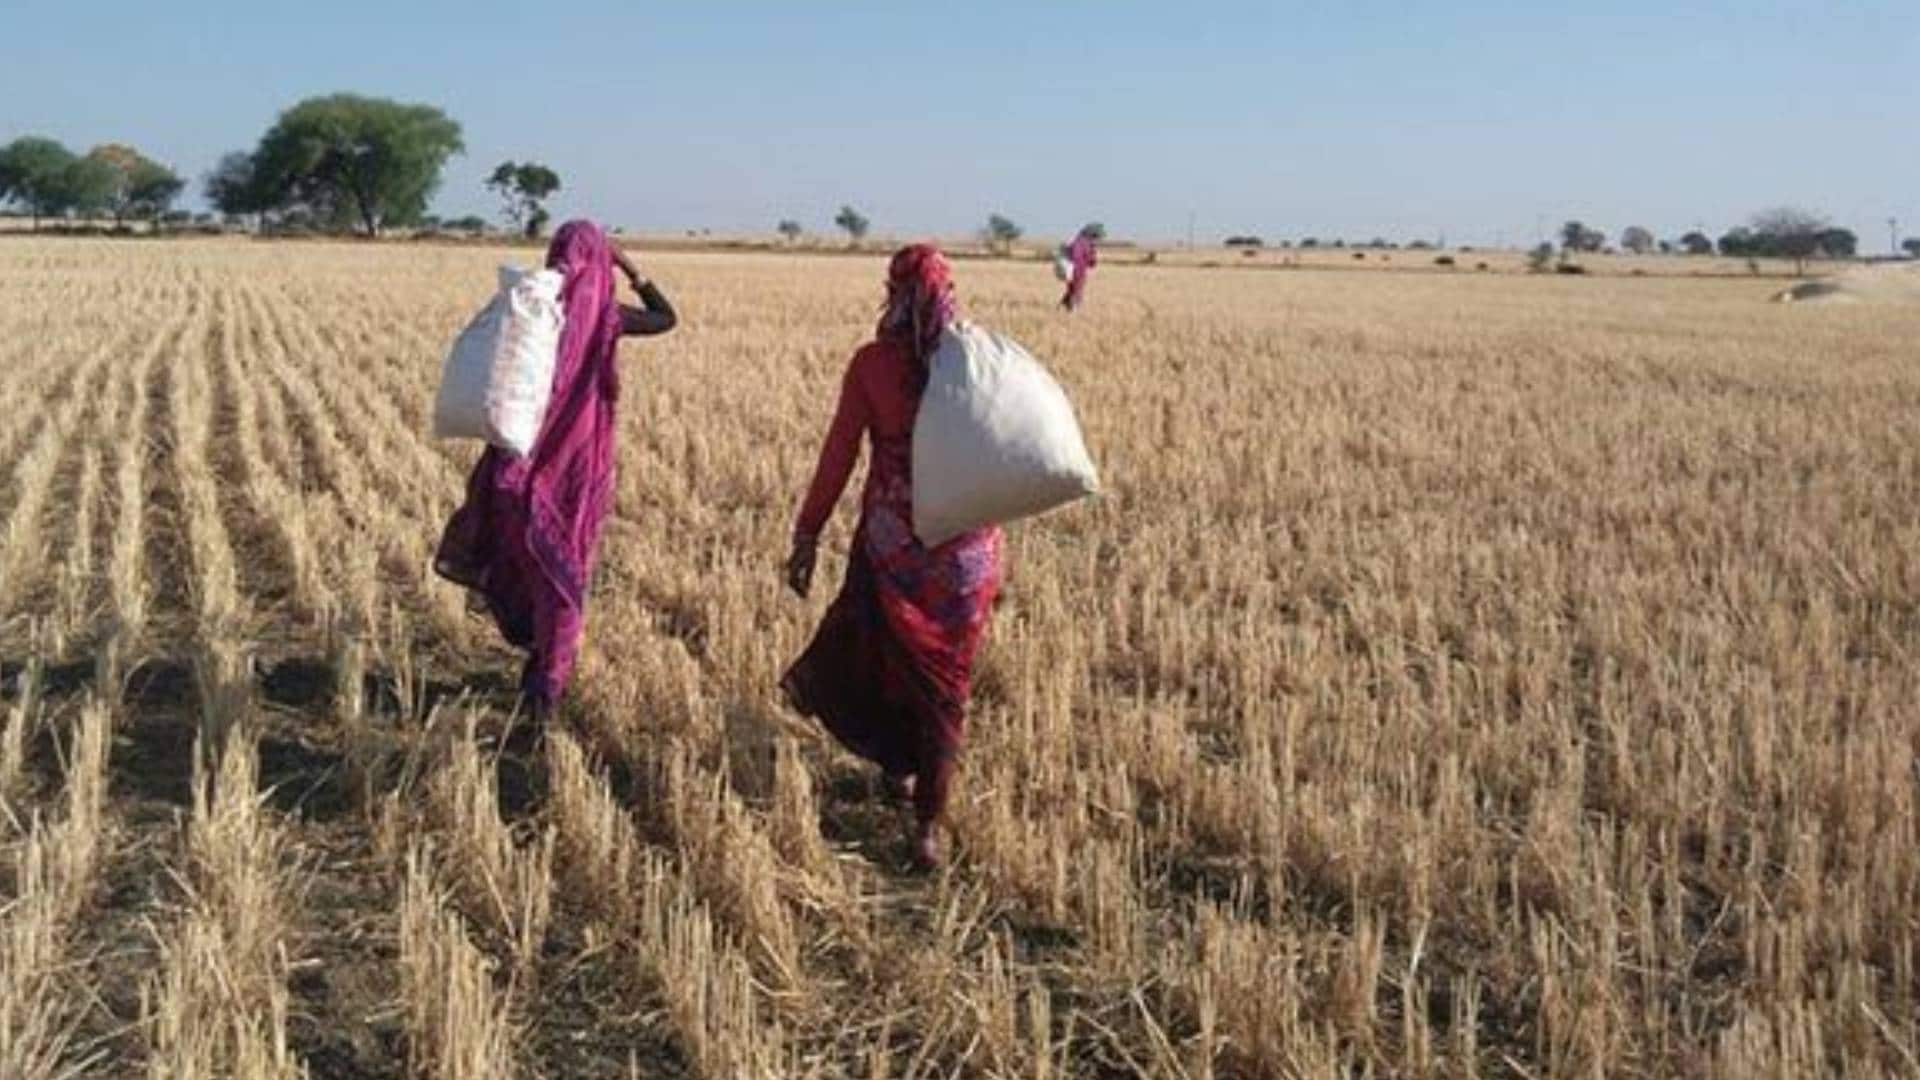 To give the (unseen) woman farmer a land of her own